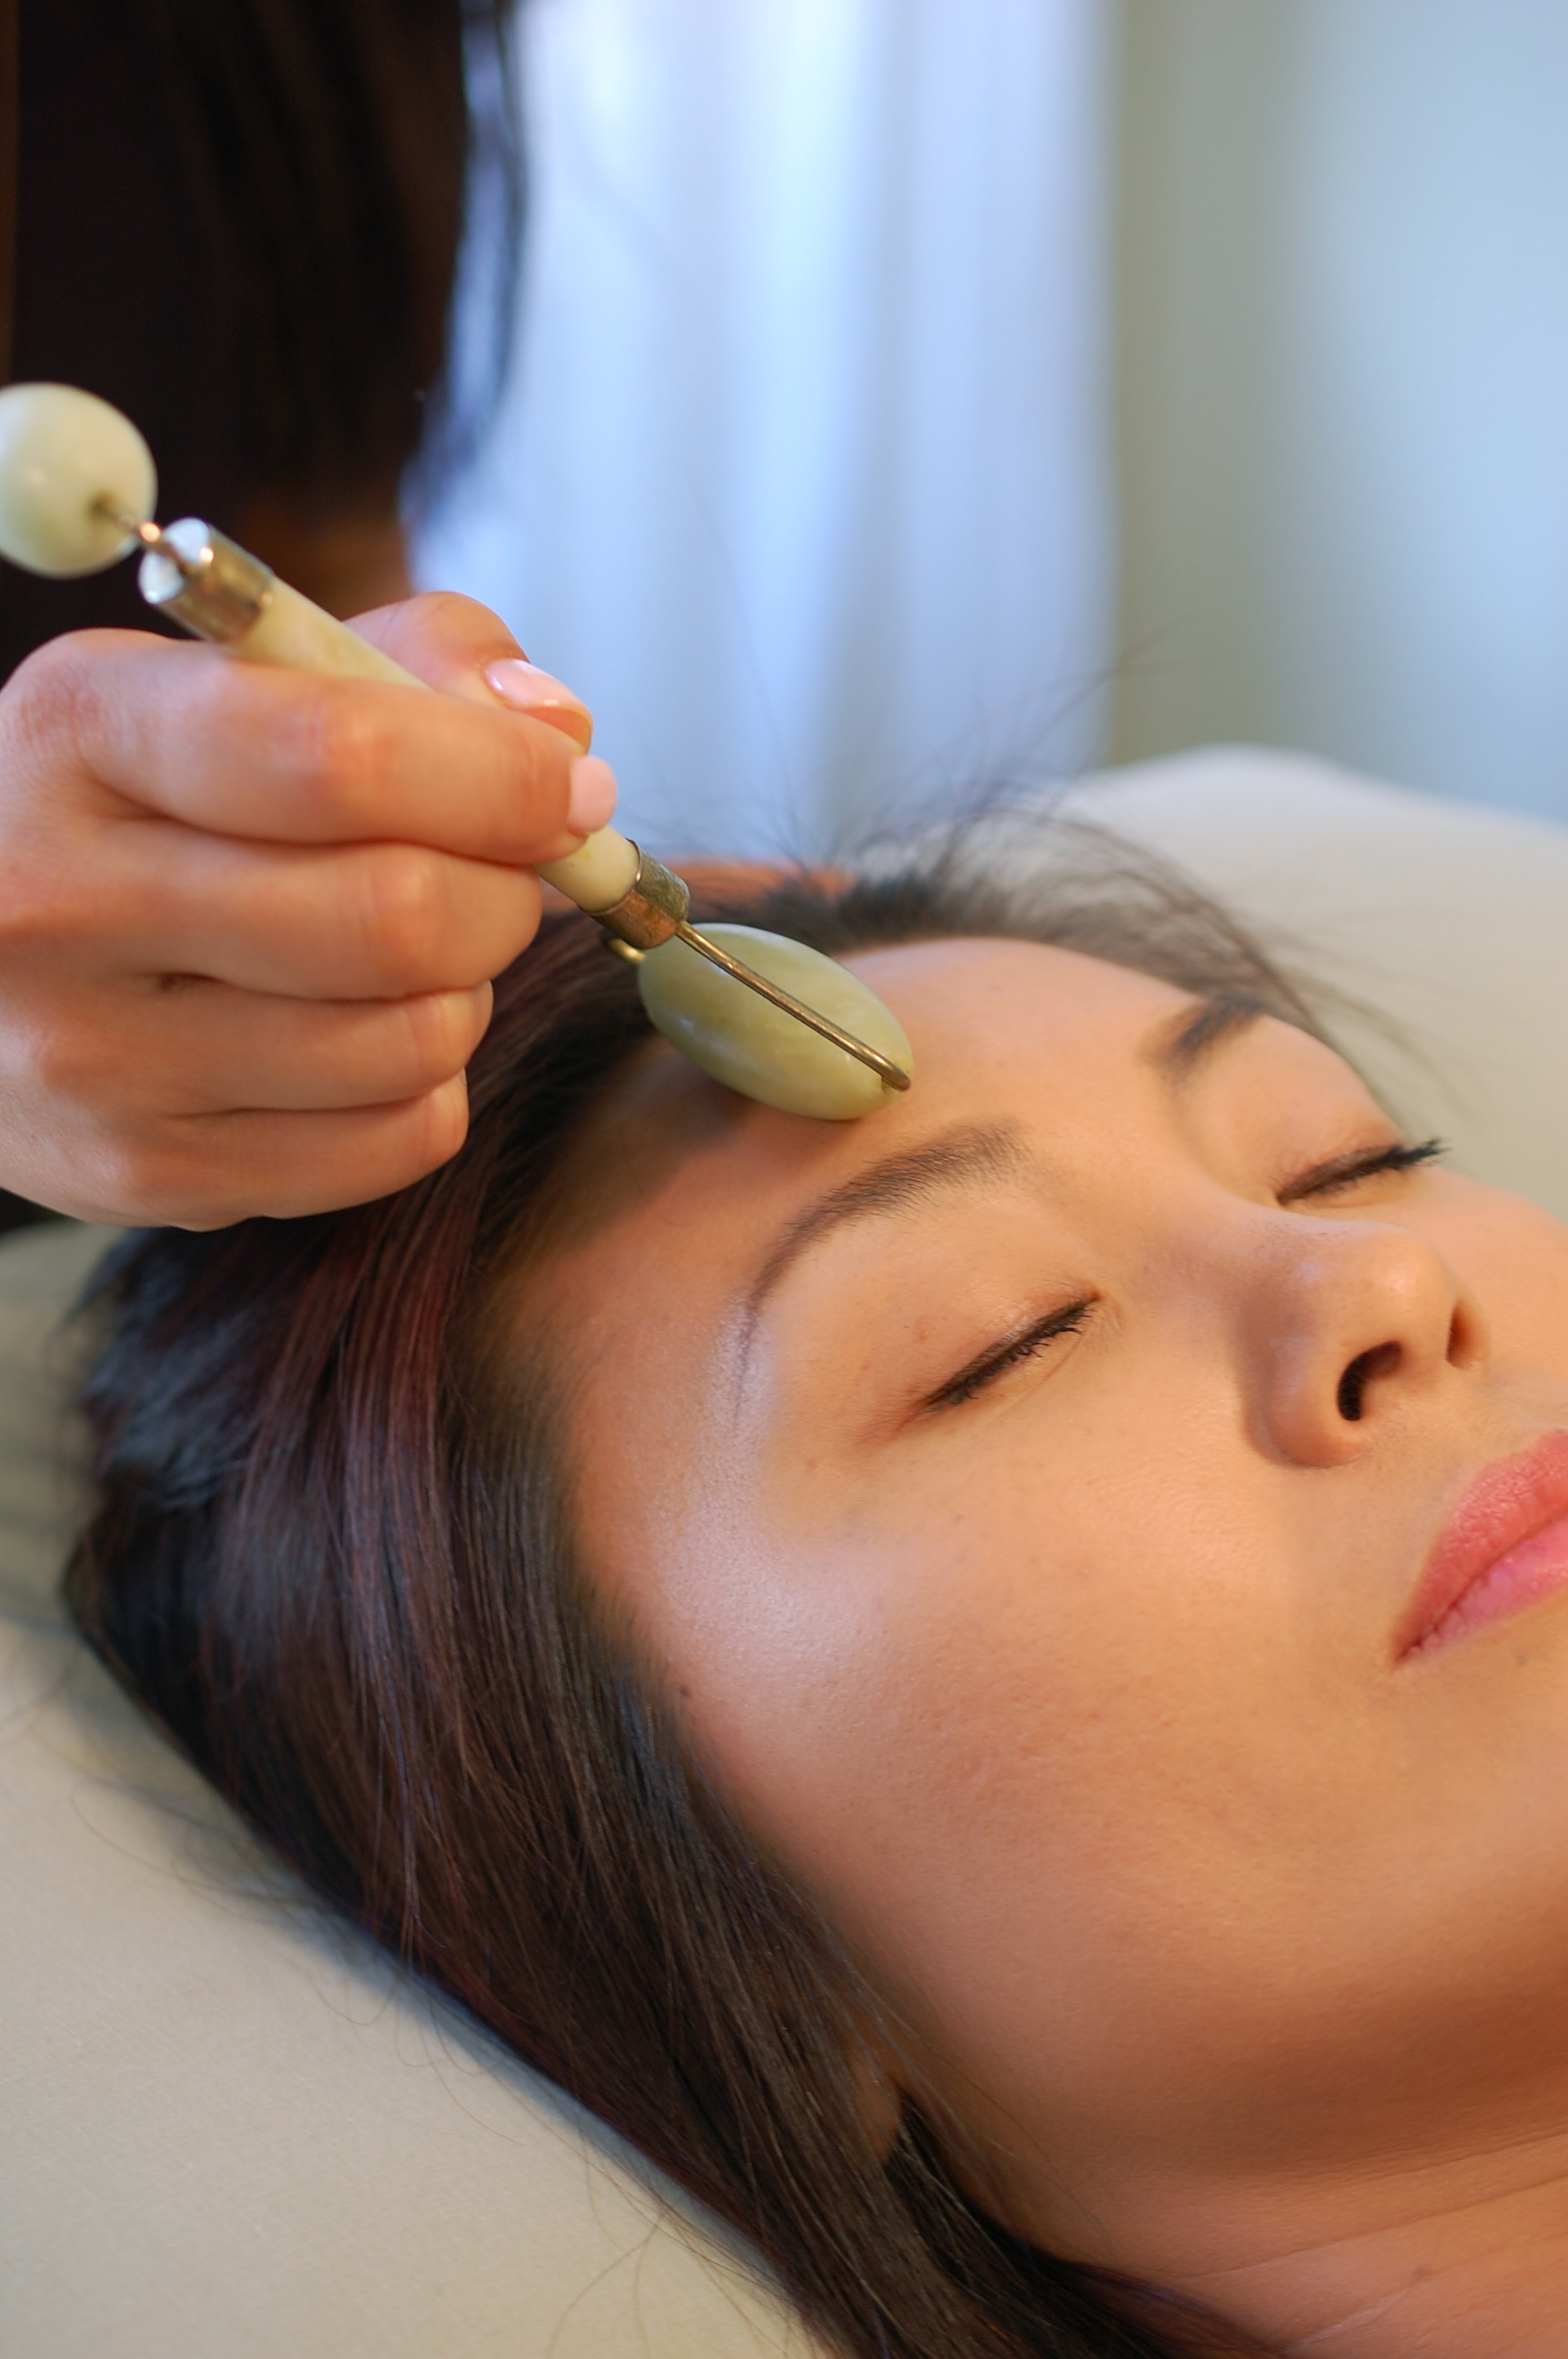 Jade roller to smooth wrinkles and soothe skin